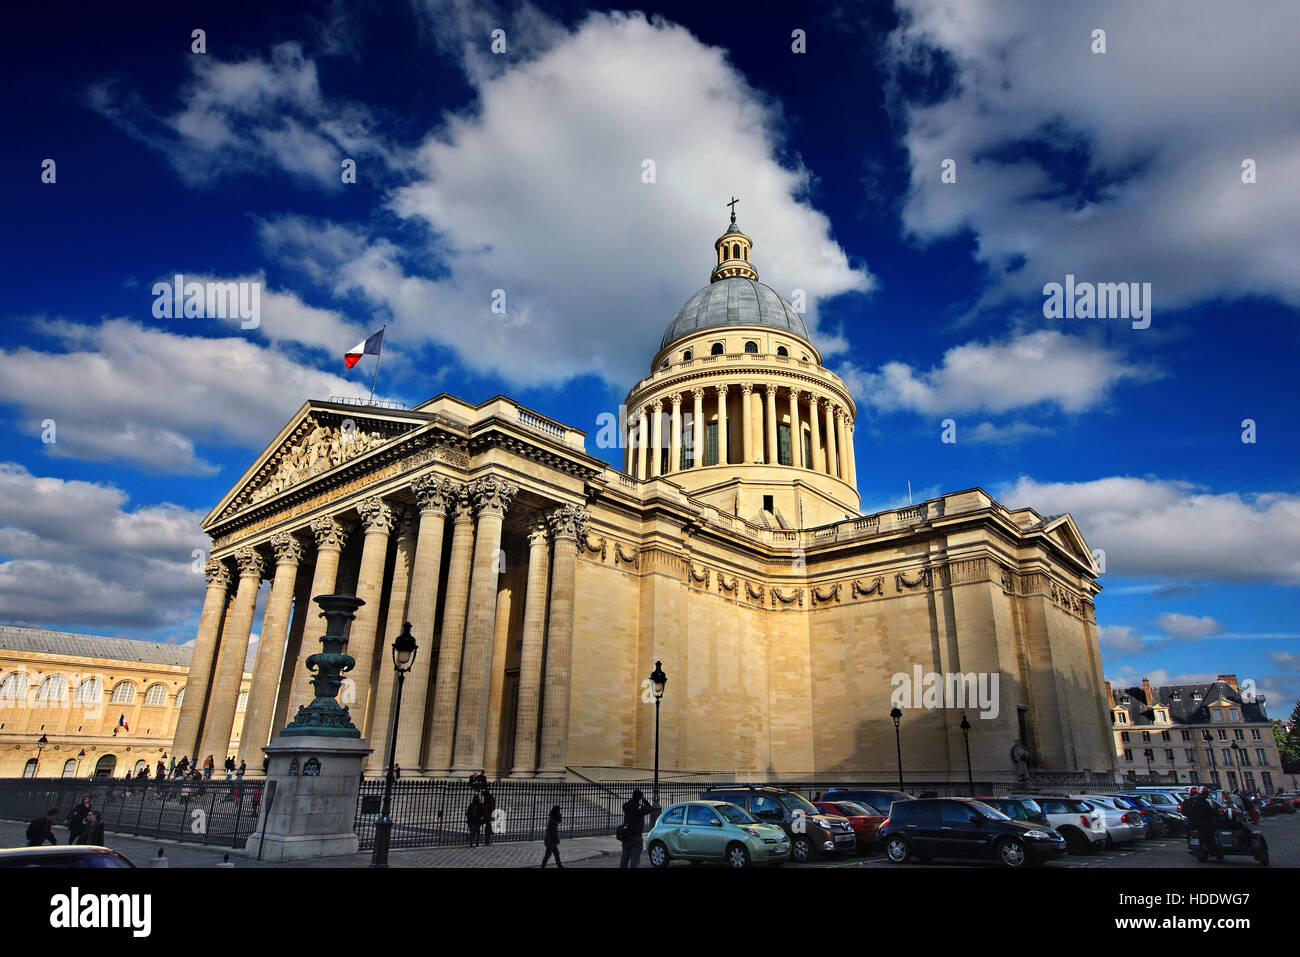 The Pantheon, Quartier Latin, Paris, France. - Stock Image